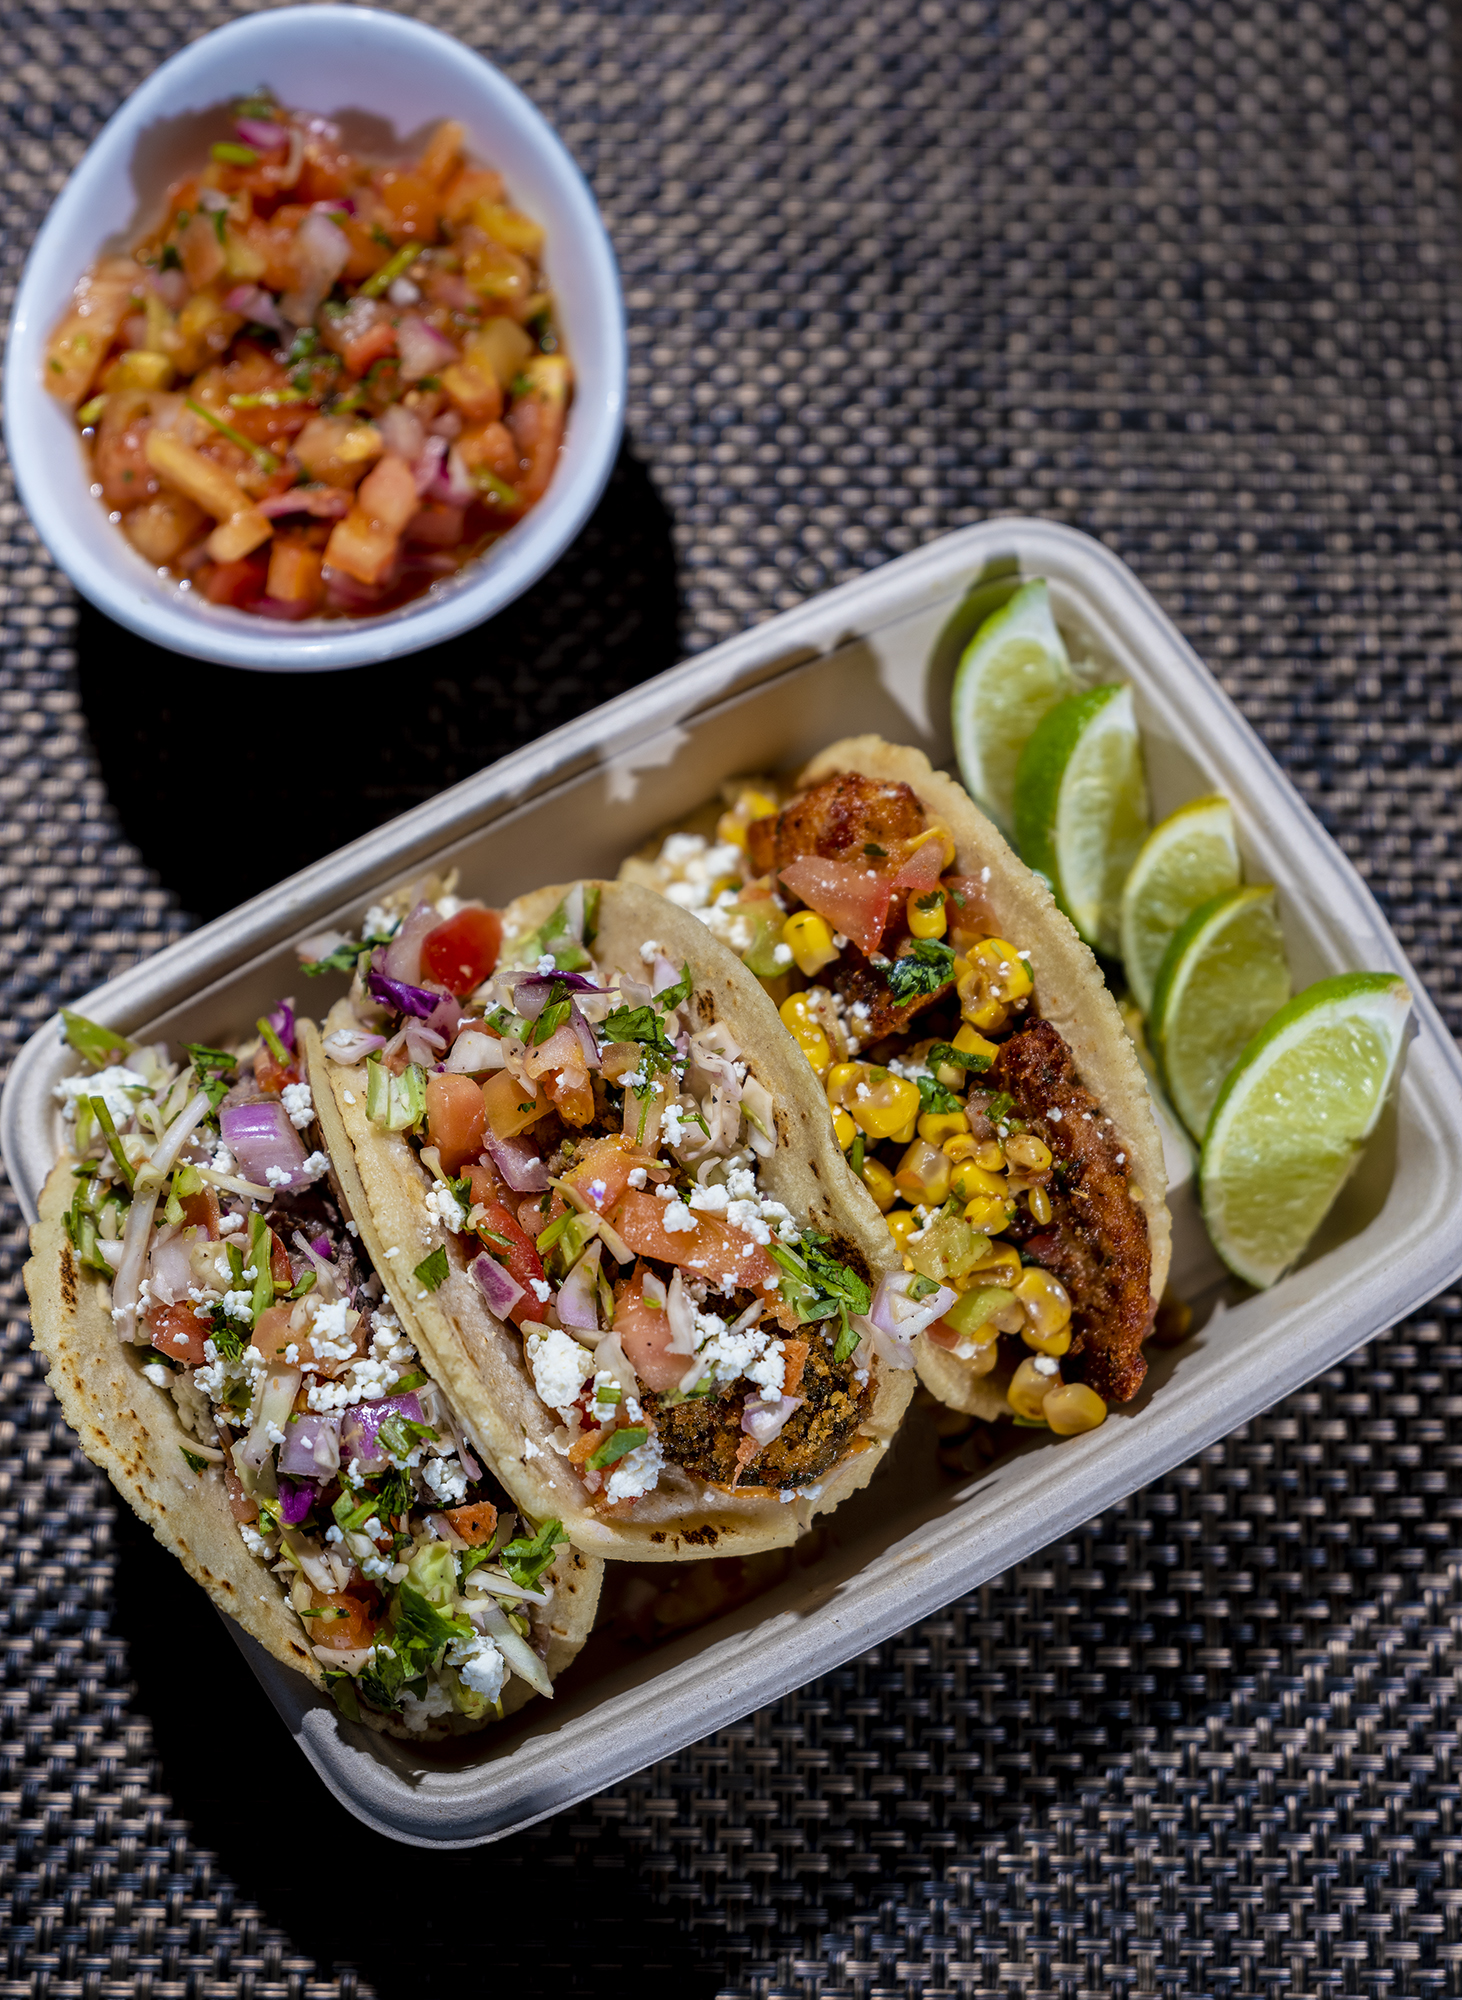 Colorful new tacos await at Rito Loco.